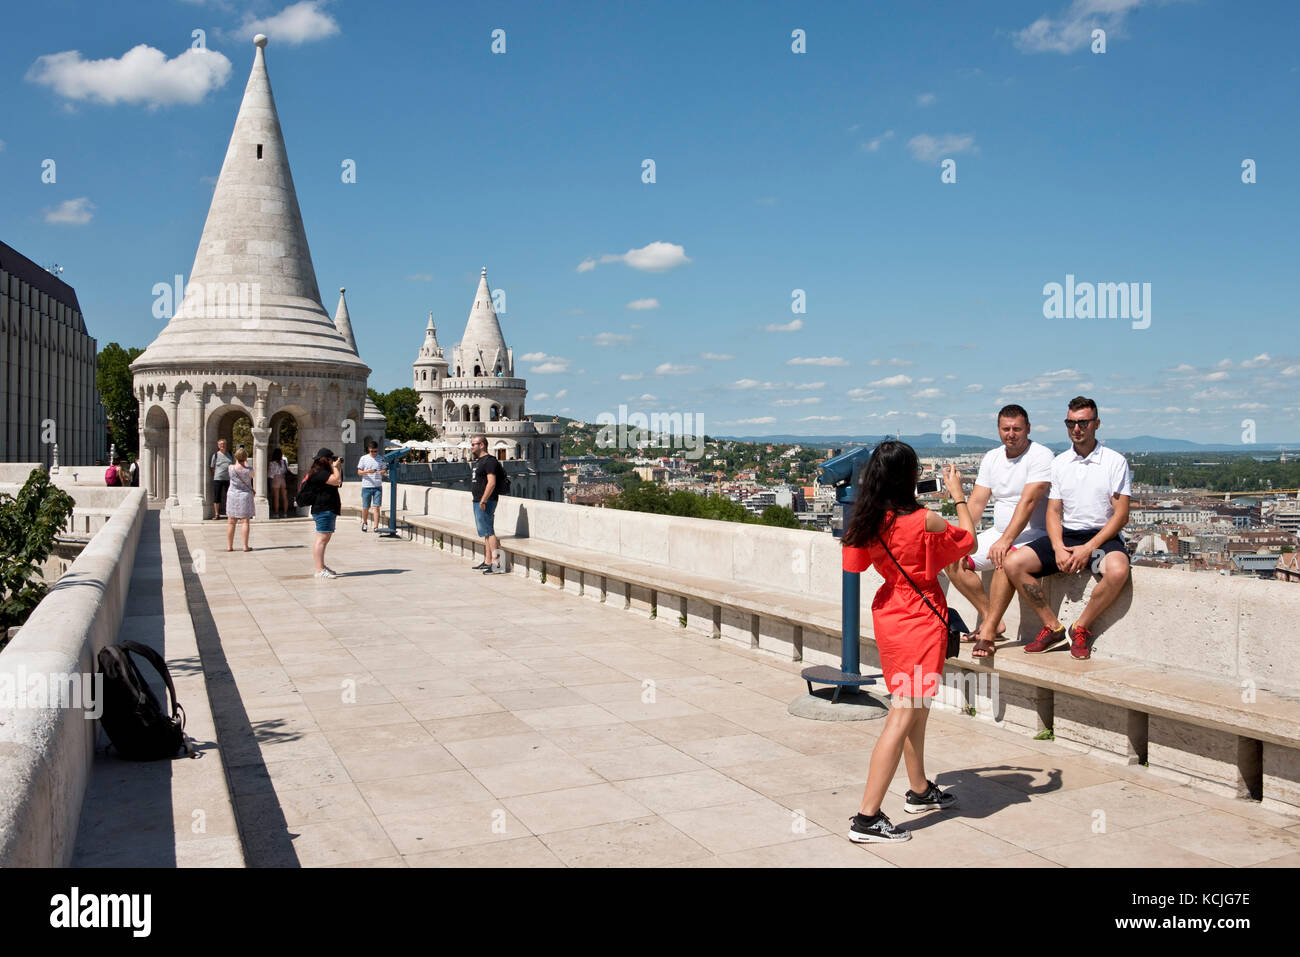 Tourists on the walls of the Fisherman's Bastion in Budapest looking at the view and taking photographs pictures - Stock Image